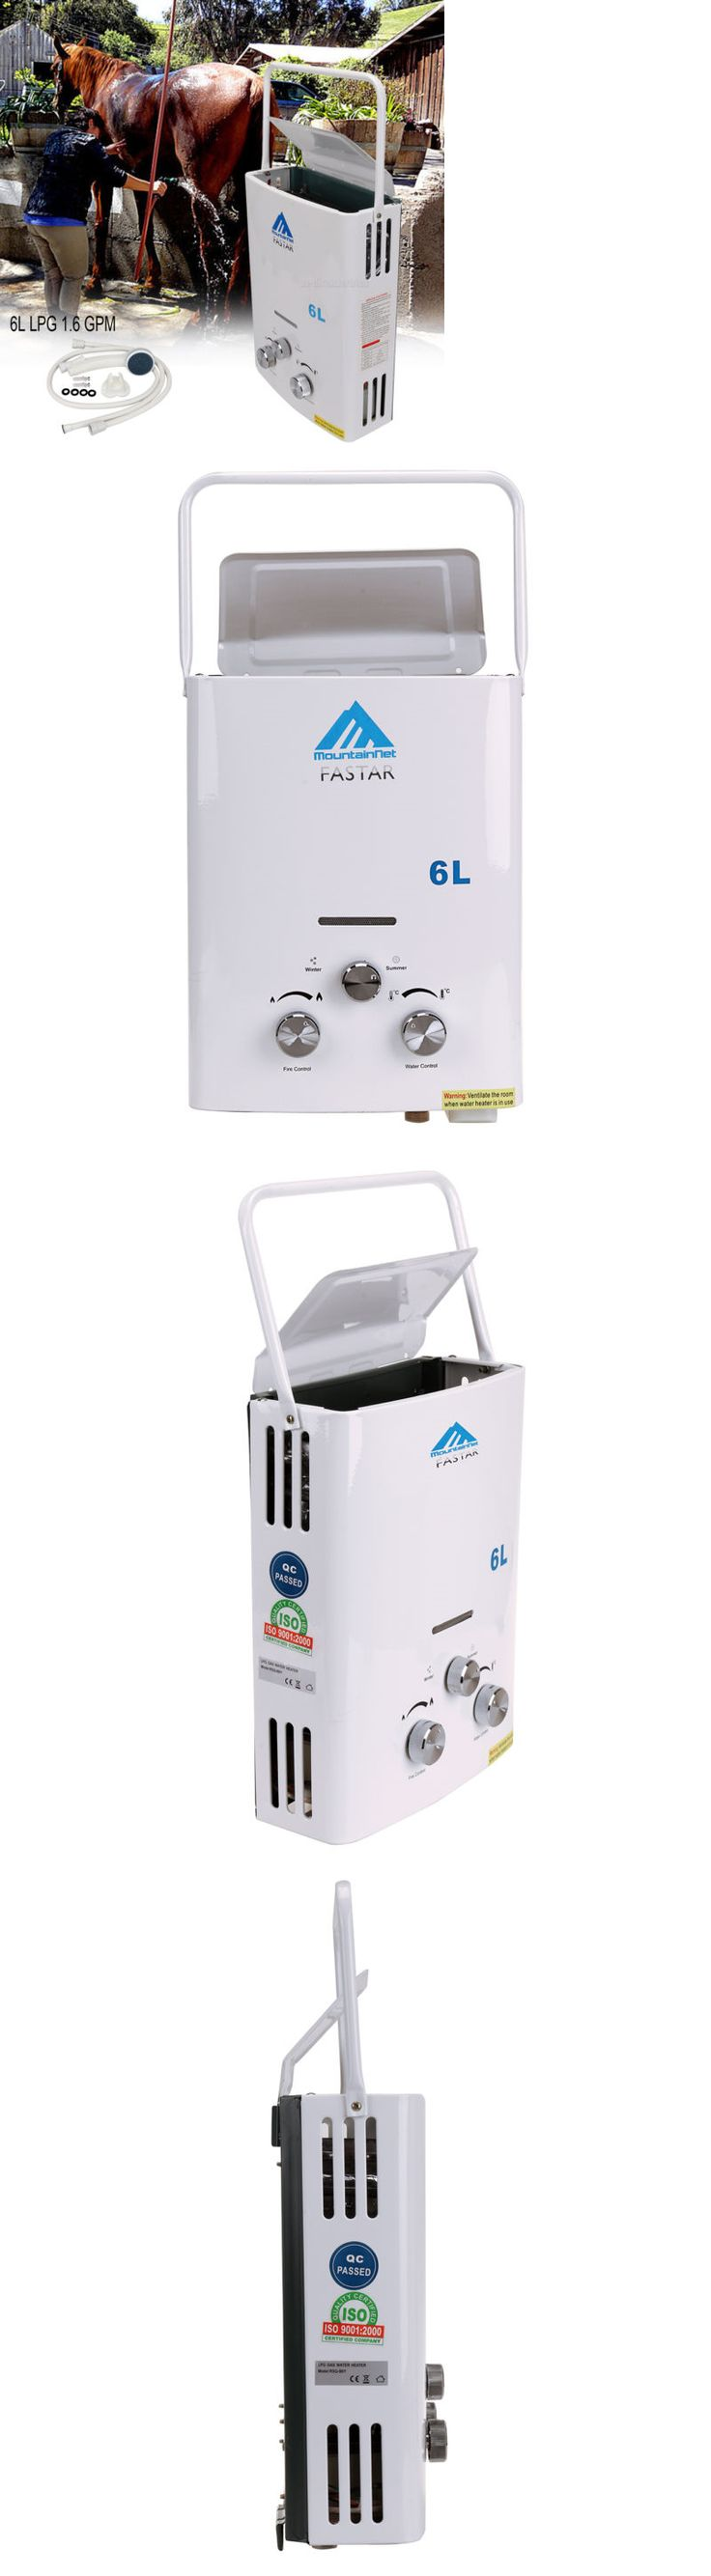 Tankless Water Heaters 115967: Portable 6L Lpg 1.6 Gpm Propane Gas Tankless Outdoor Instant Hot Water Heater Ce -> BUY IT NOW ONLY: $69.99 on eBay!